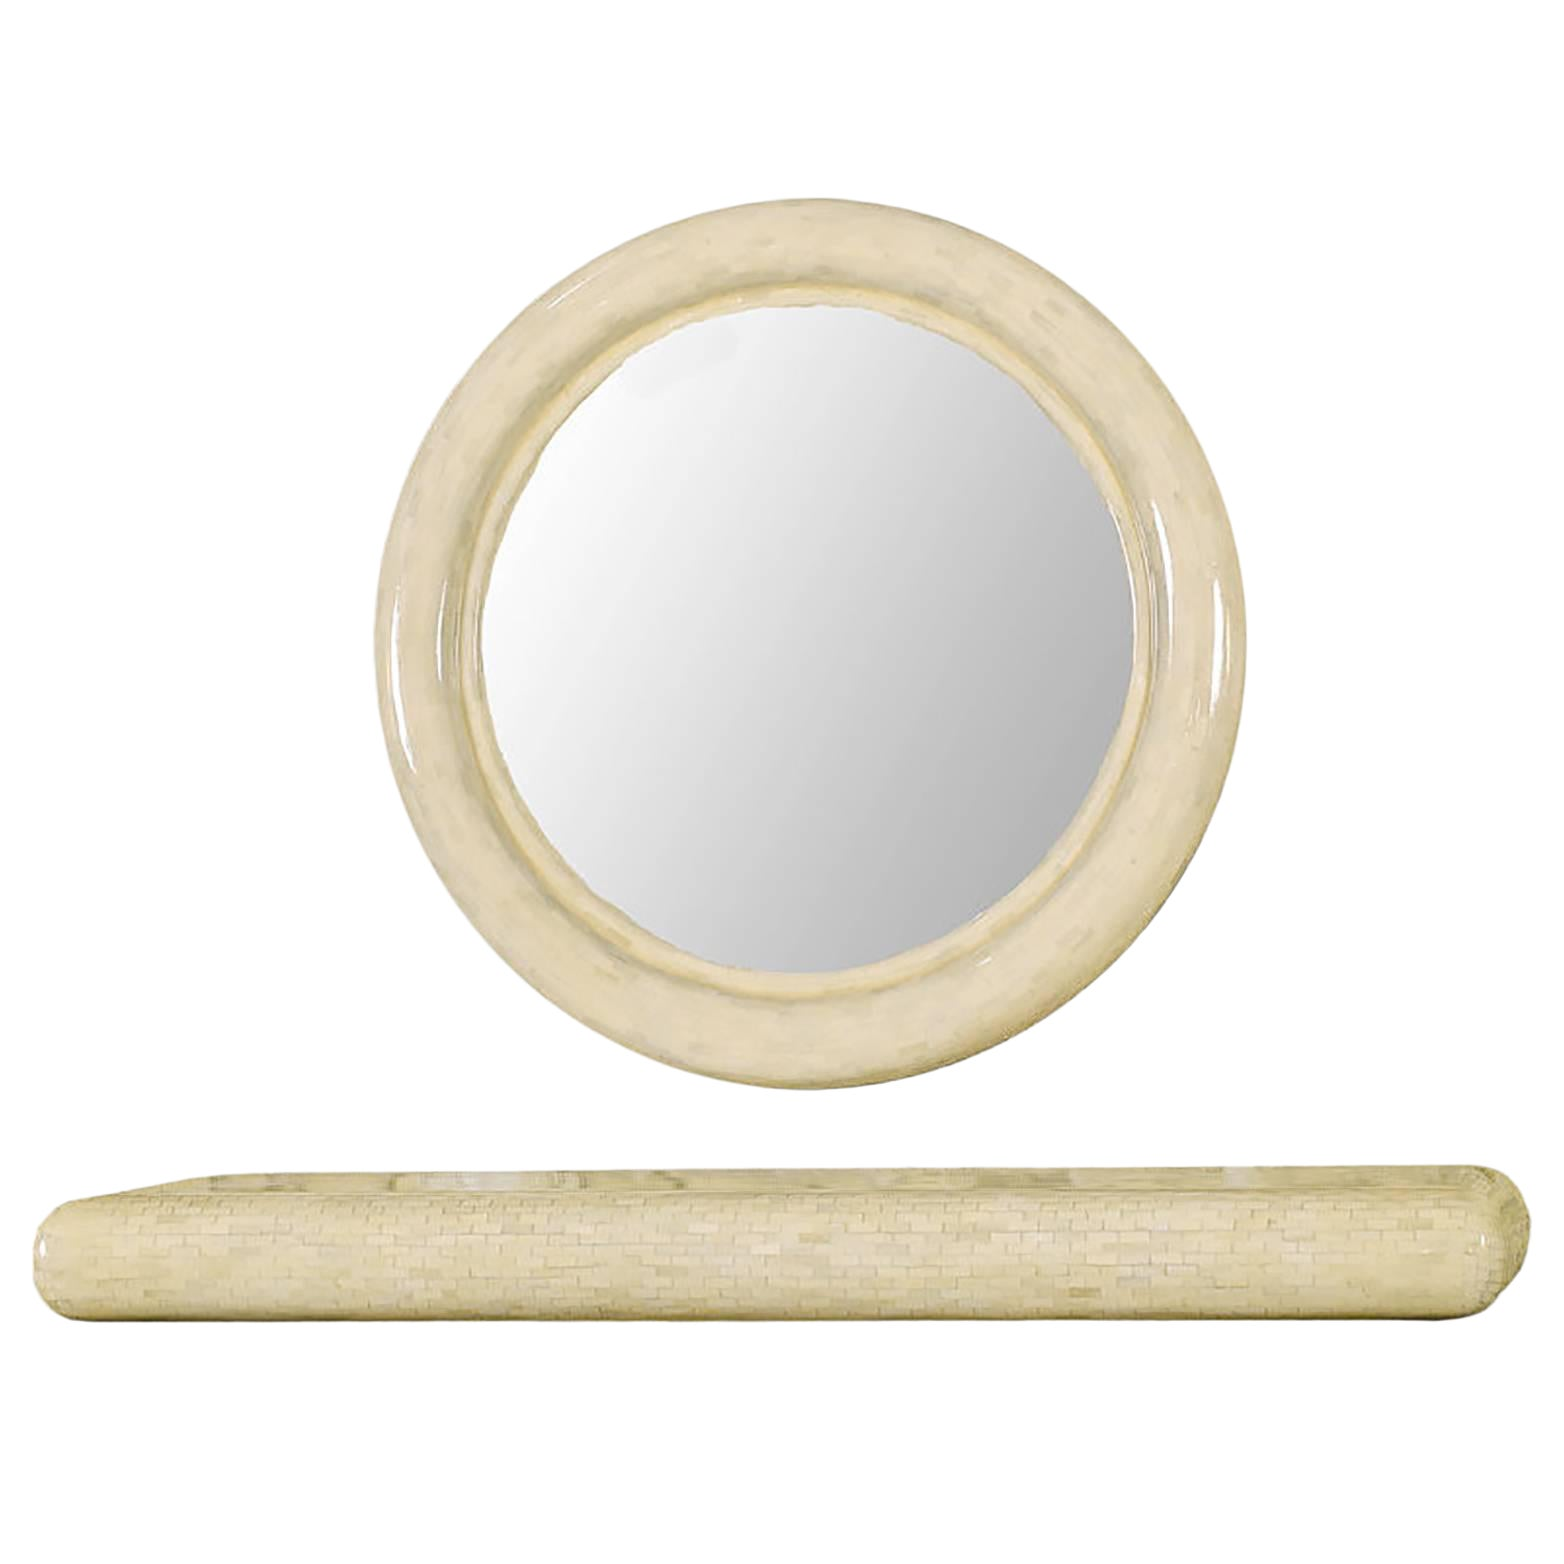 Round Tessellated Bone Mirror With Wall Mounted Console Table Chairish